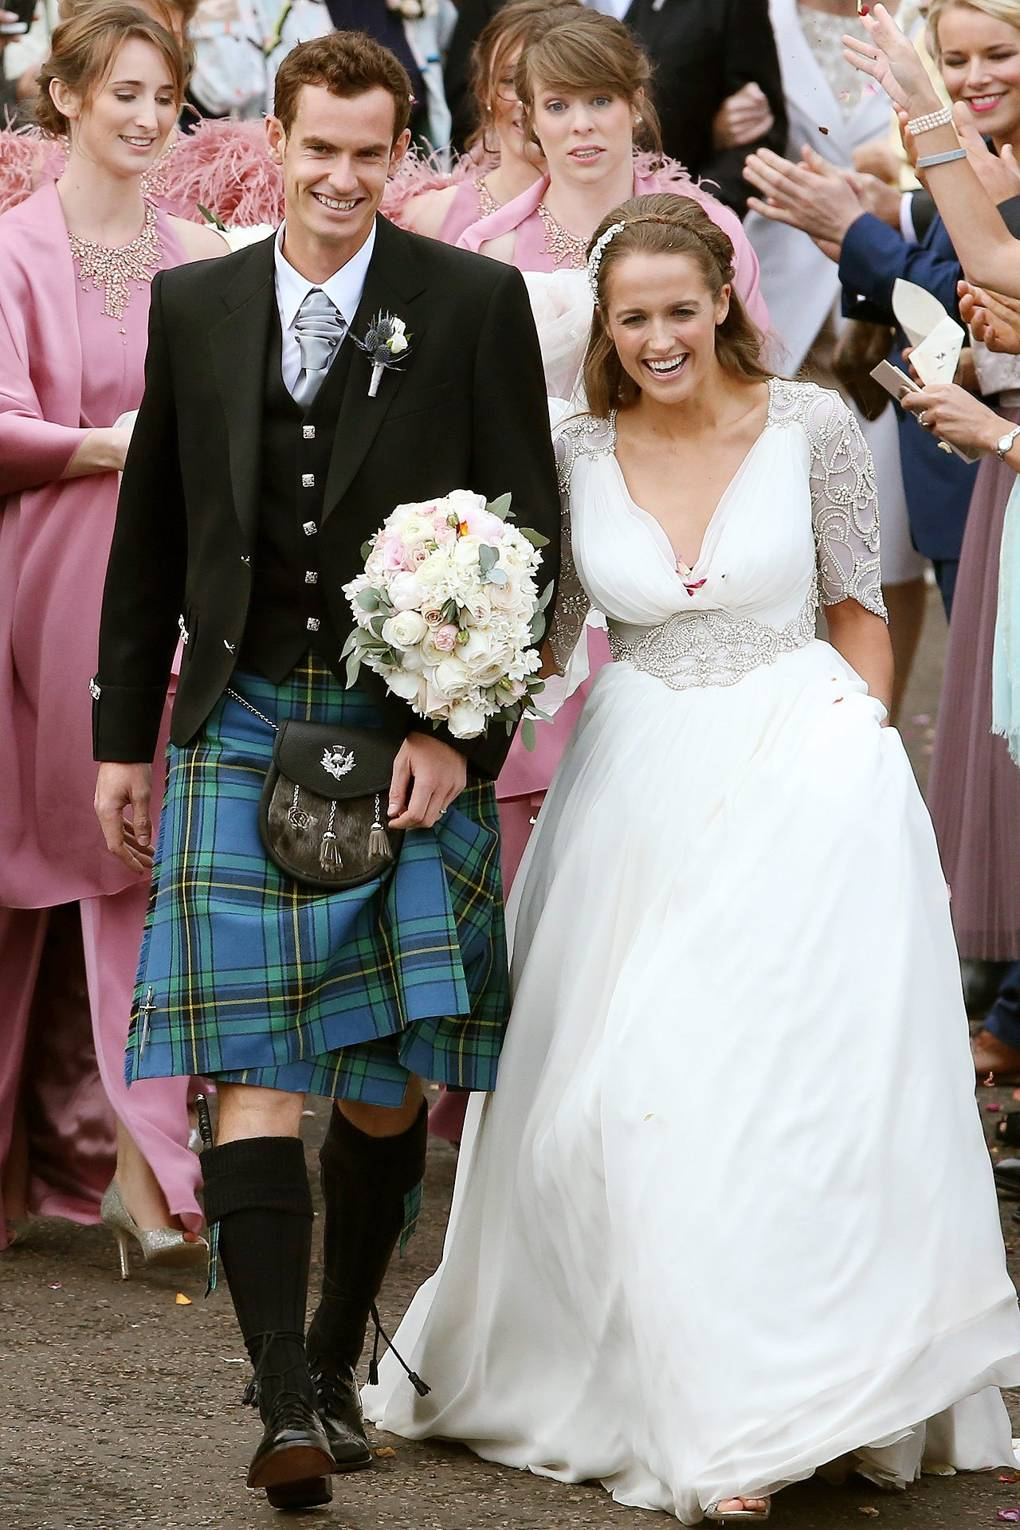 Andy murray wedding pictures kim sears wedding dress pictures andy murray wedding pictures kim sears wedding dress pictures glamour uk ombrellifo Gallery